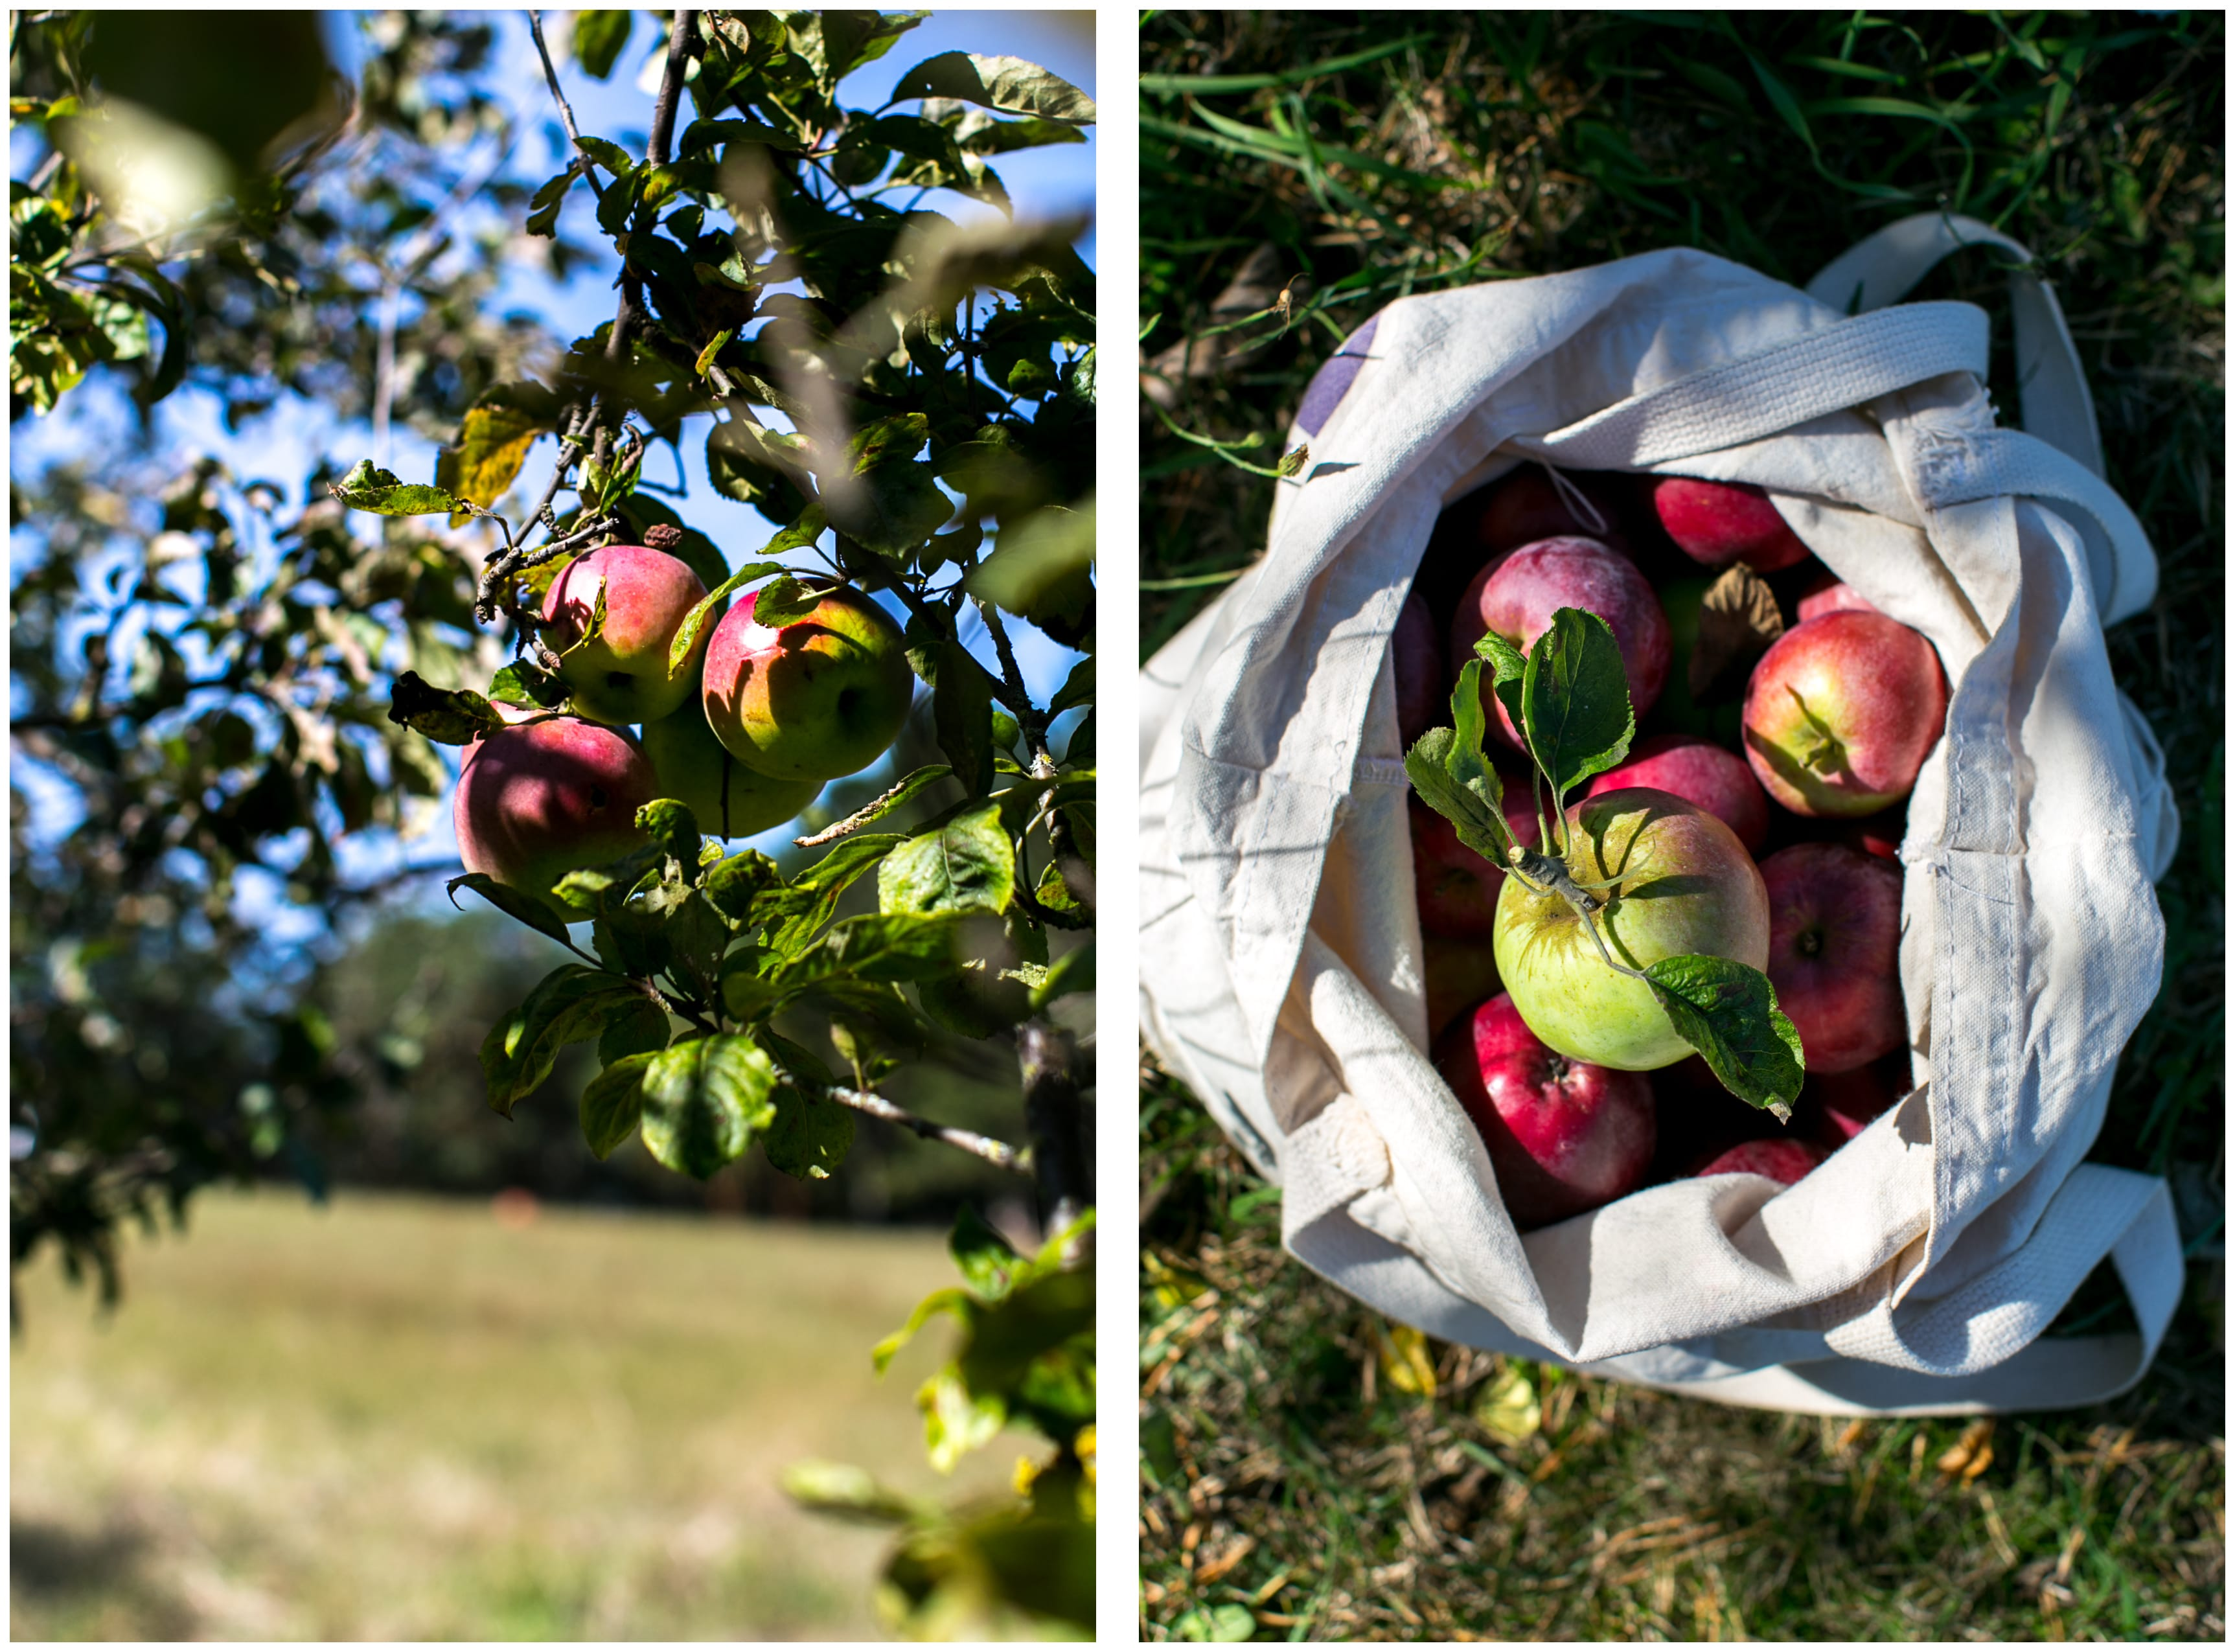 Apples on an apple tree and picked apples in a bag.